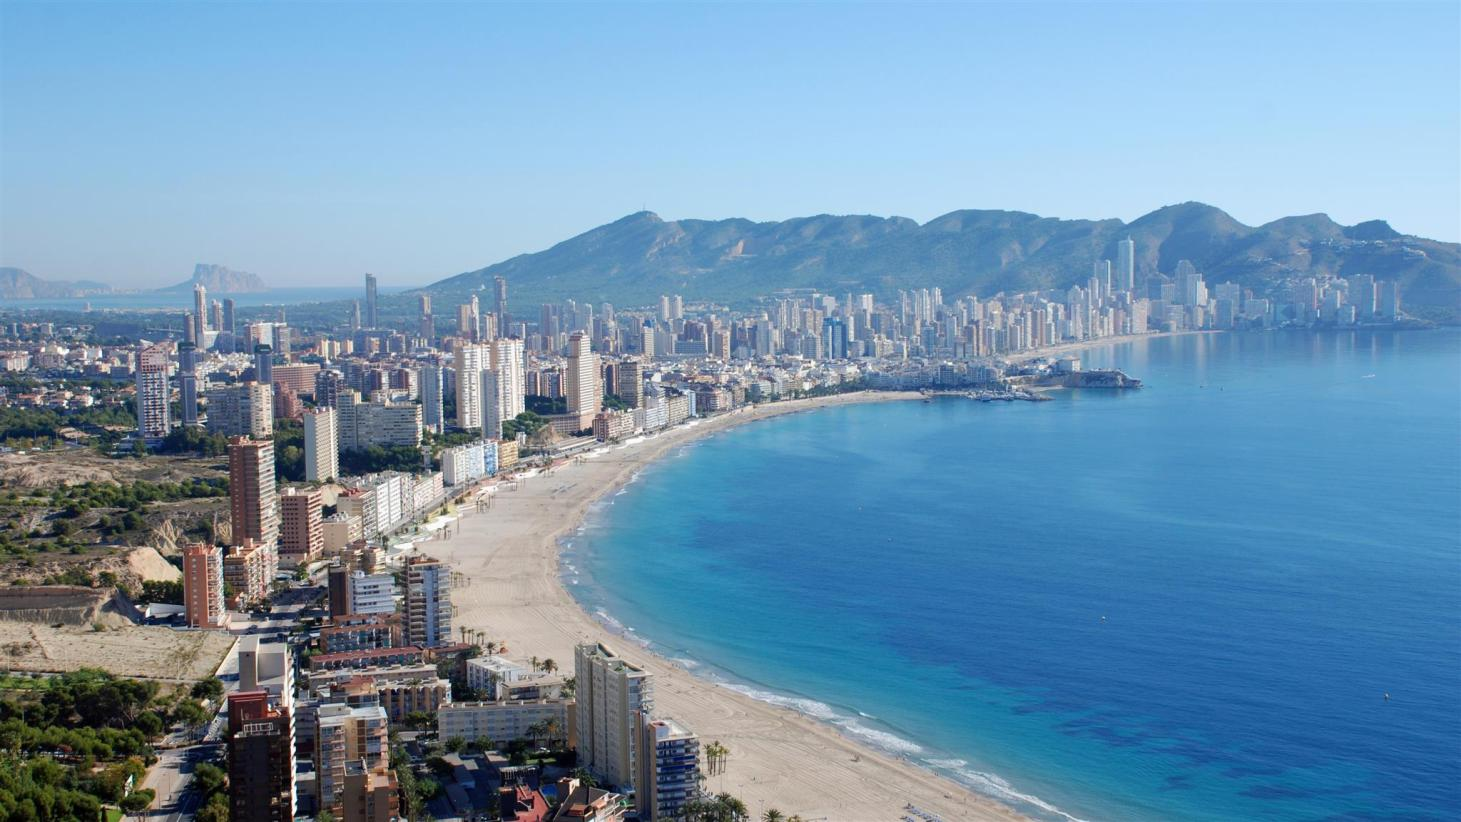 30 Best Benidorm Costa Blanca Hotels Free Cancellation 2021 Price Lists Reviews Of The Best Hotels In Benidorm Costa Blanca Spain